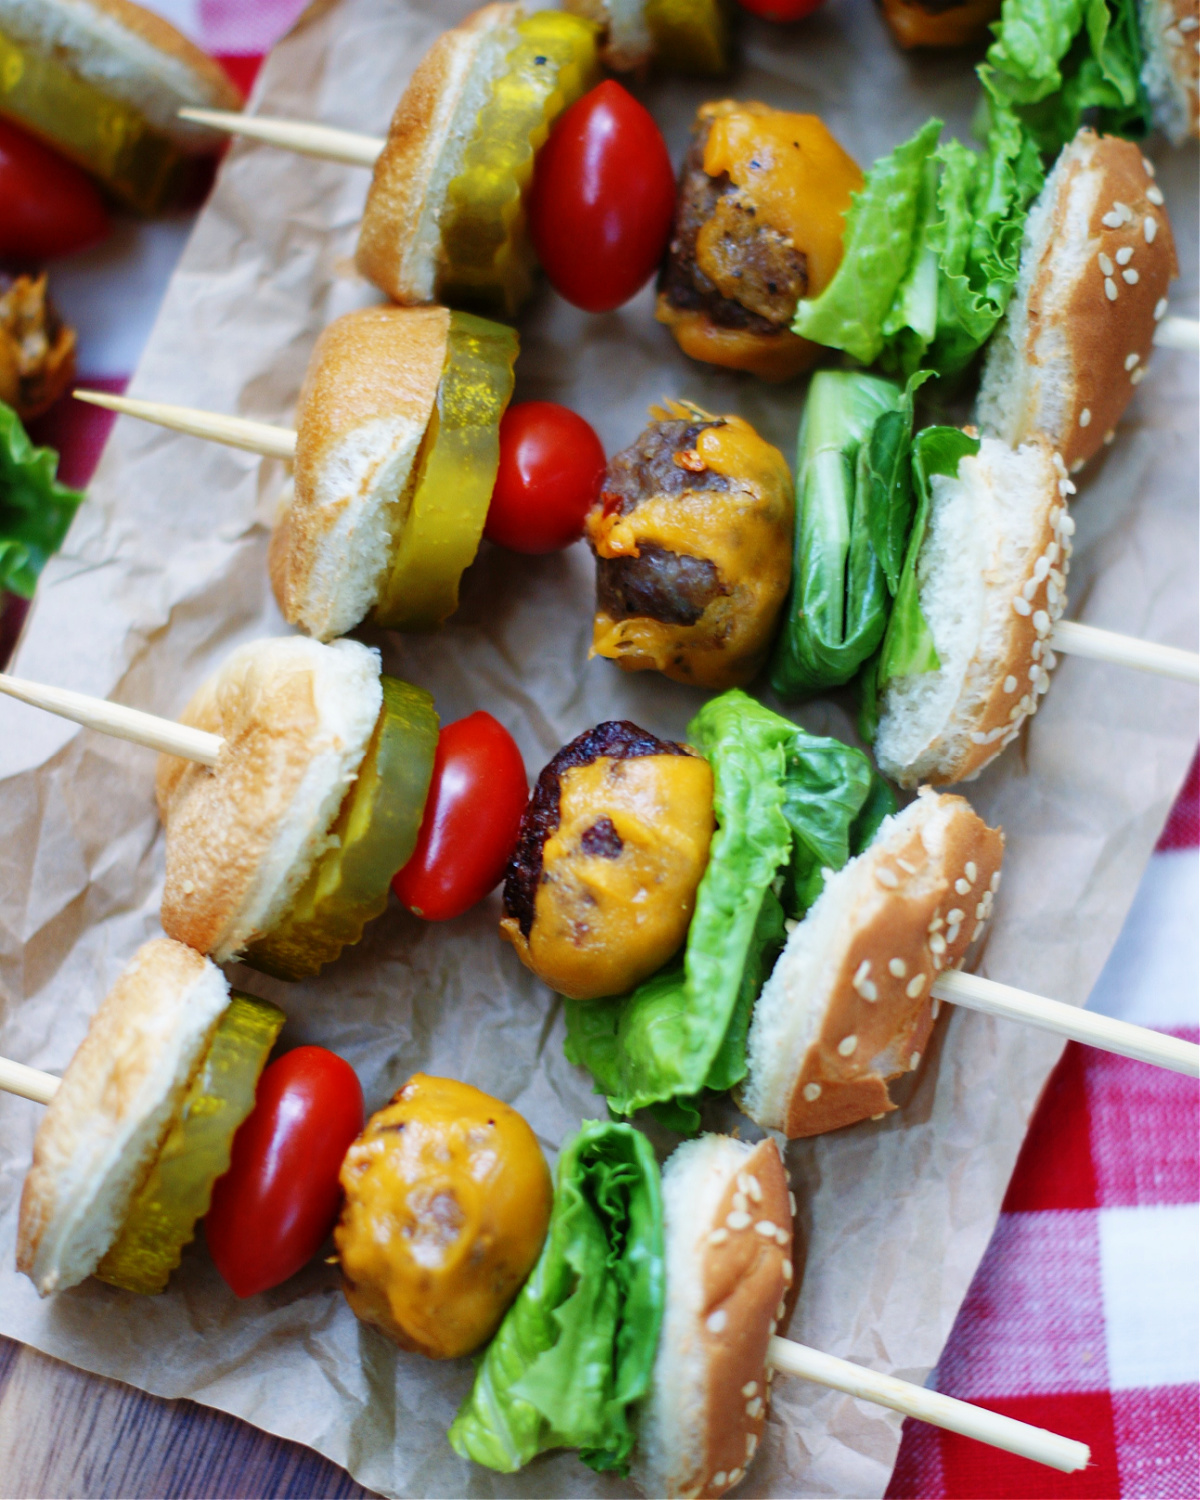 4 mini cheeseburger skewers to give another look at ingredients